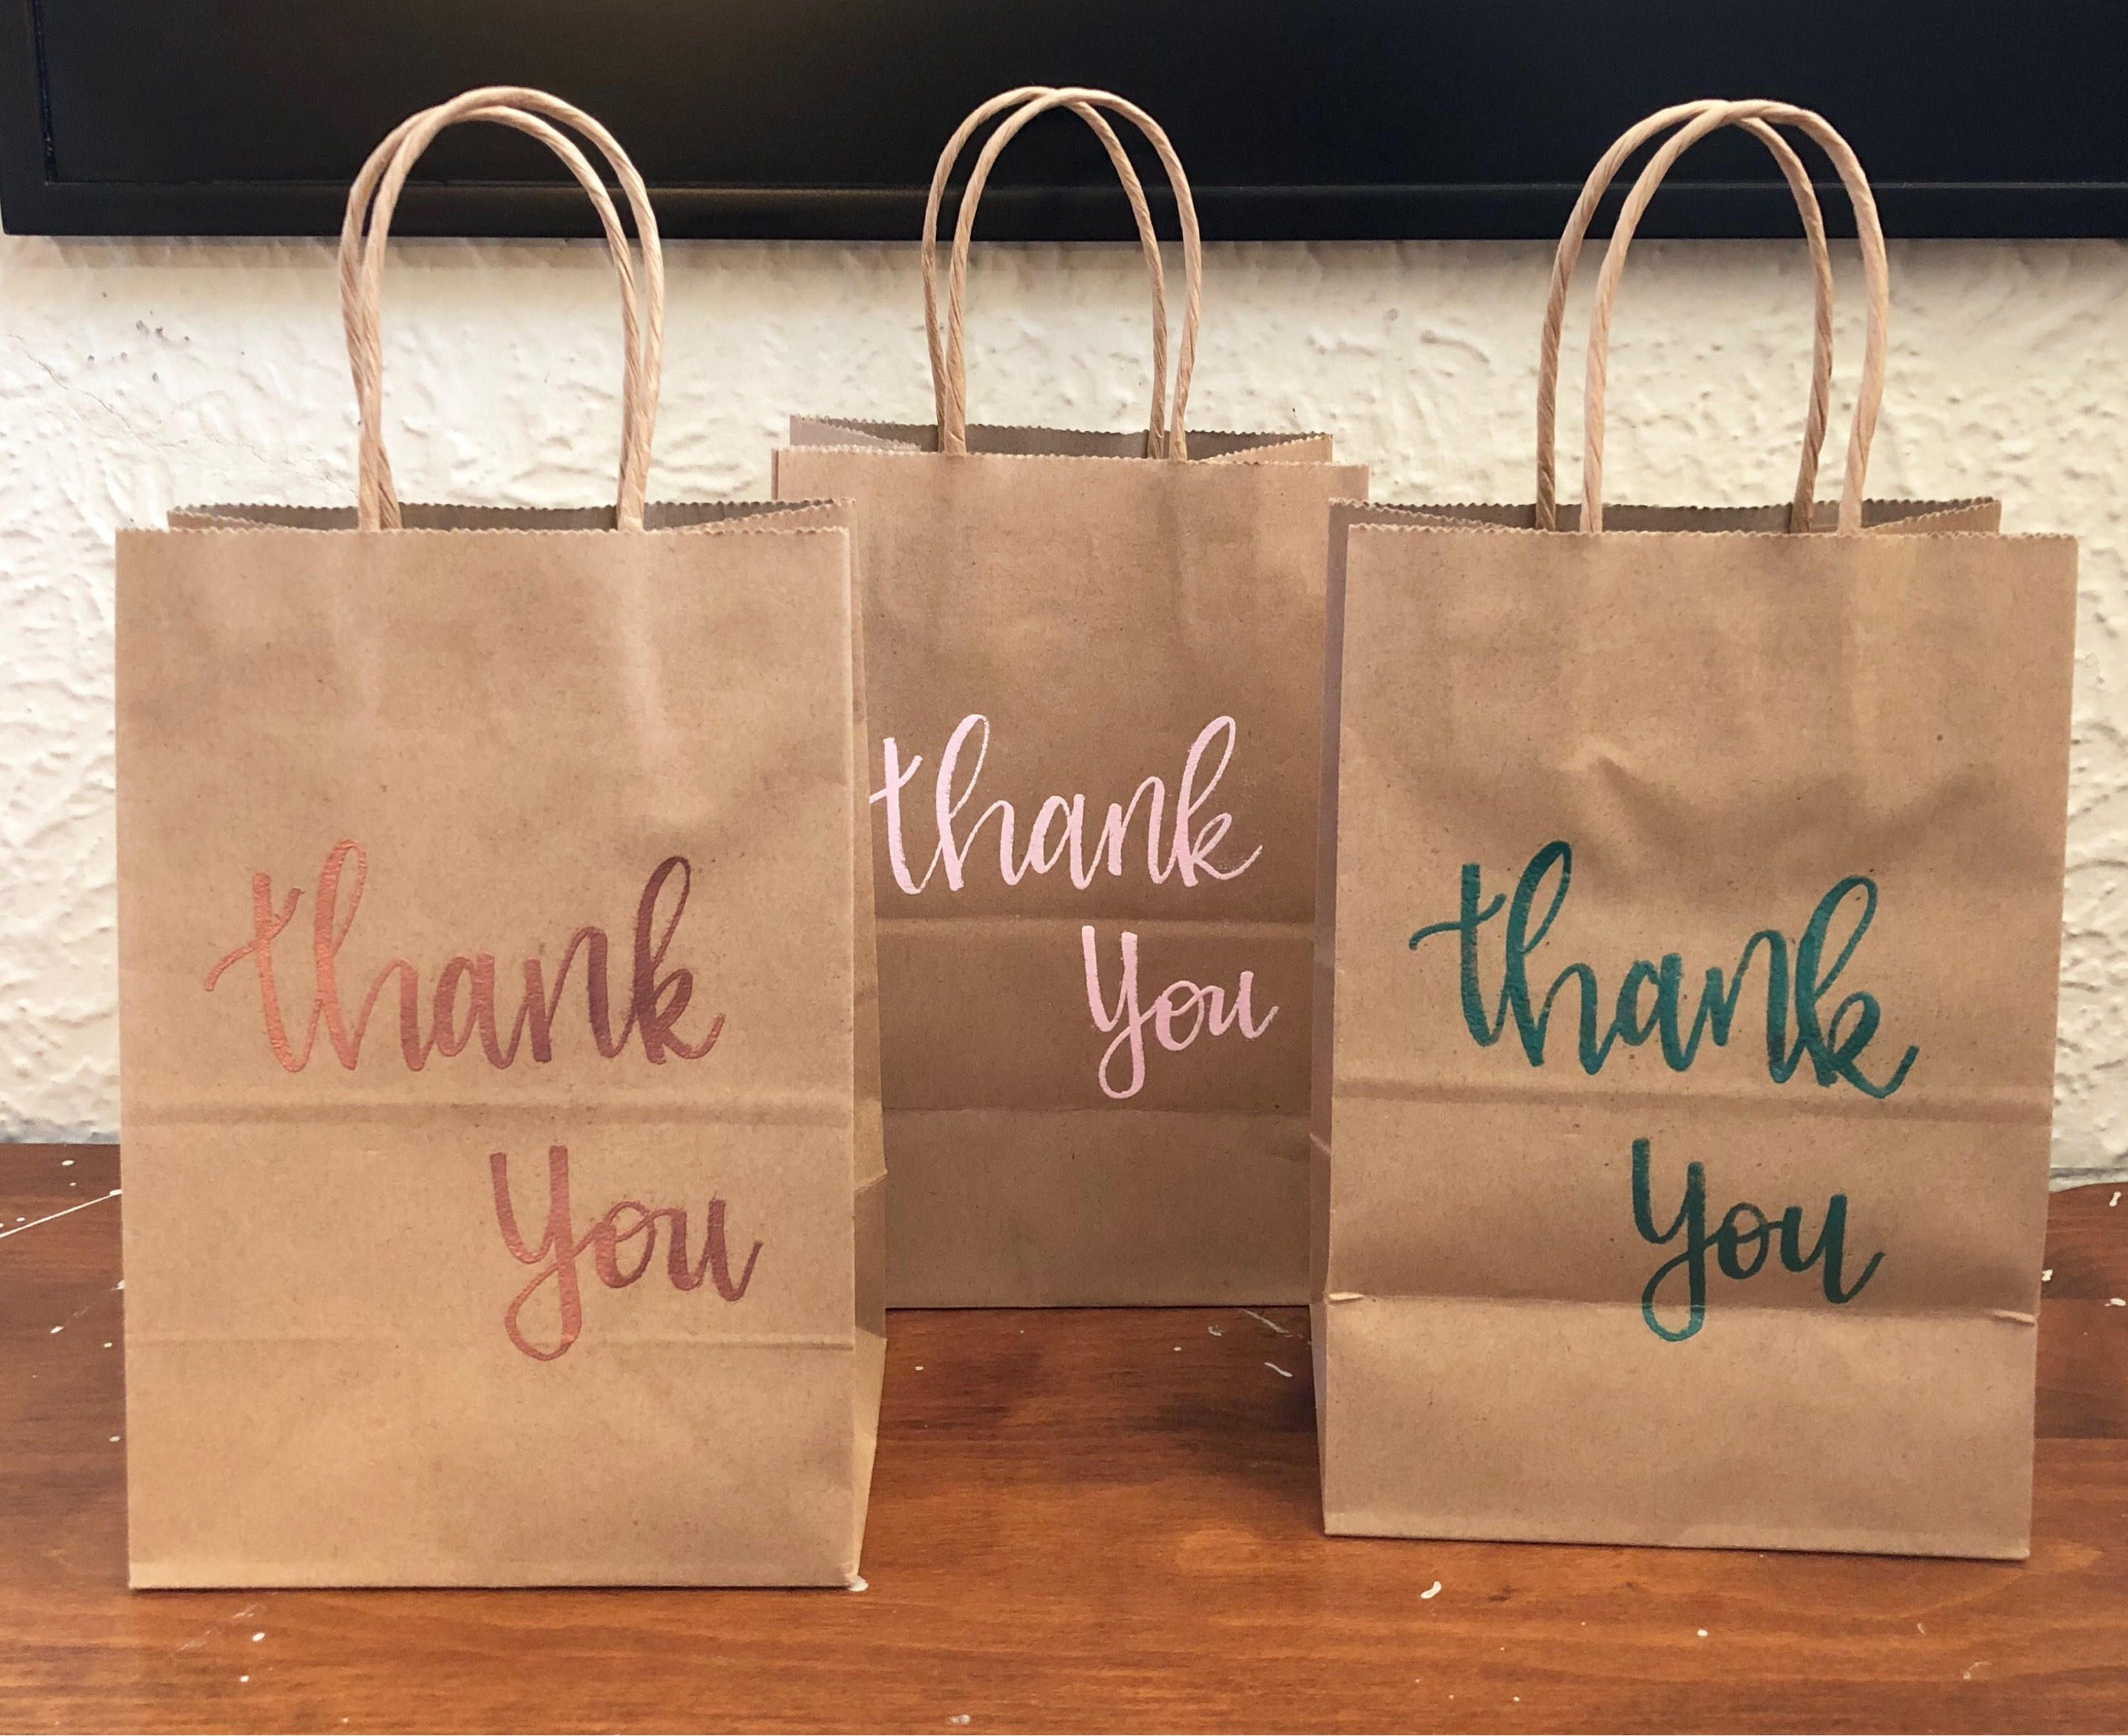 Thank you paper gift bags kraft paper bags party favor bags thank you paper gift bags kraft paper bags party favor bags wedding bags jeuxipadfo Choice Image